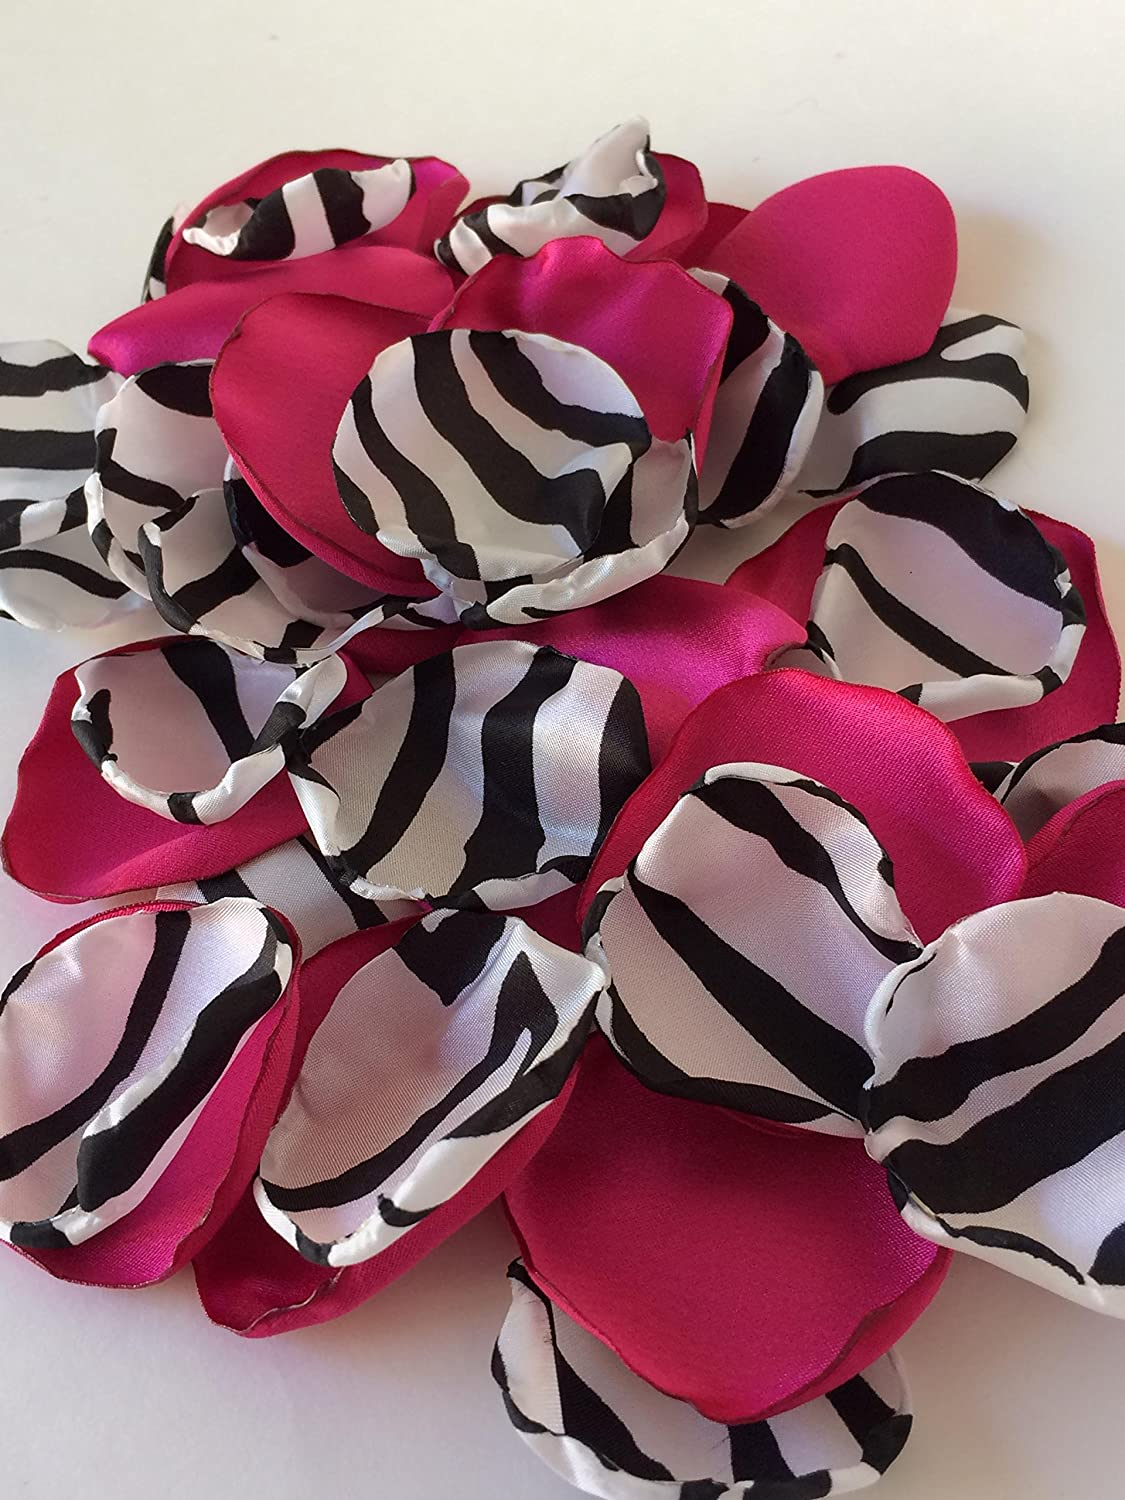 Hot pink and zebra, black and white stripes-Handmade satin fabric flower petals- wedding toss, flower girl, aisle decor, satin petals, bendy blossoms